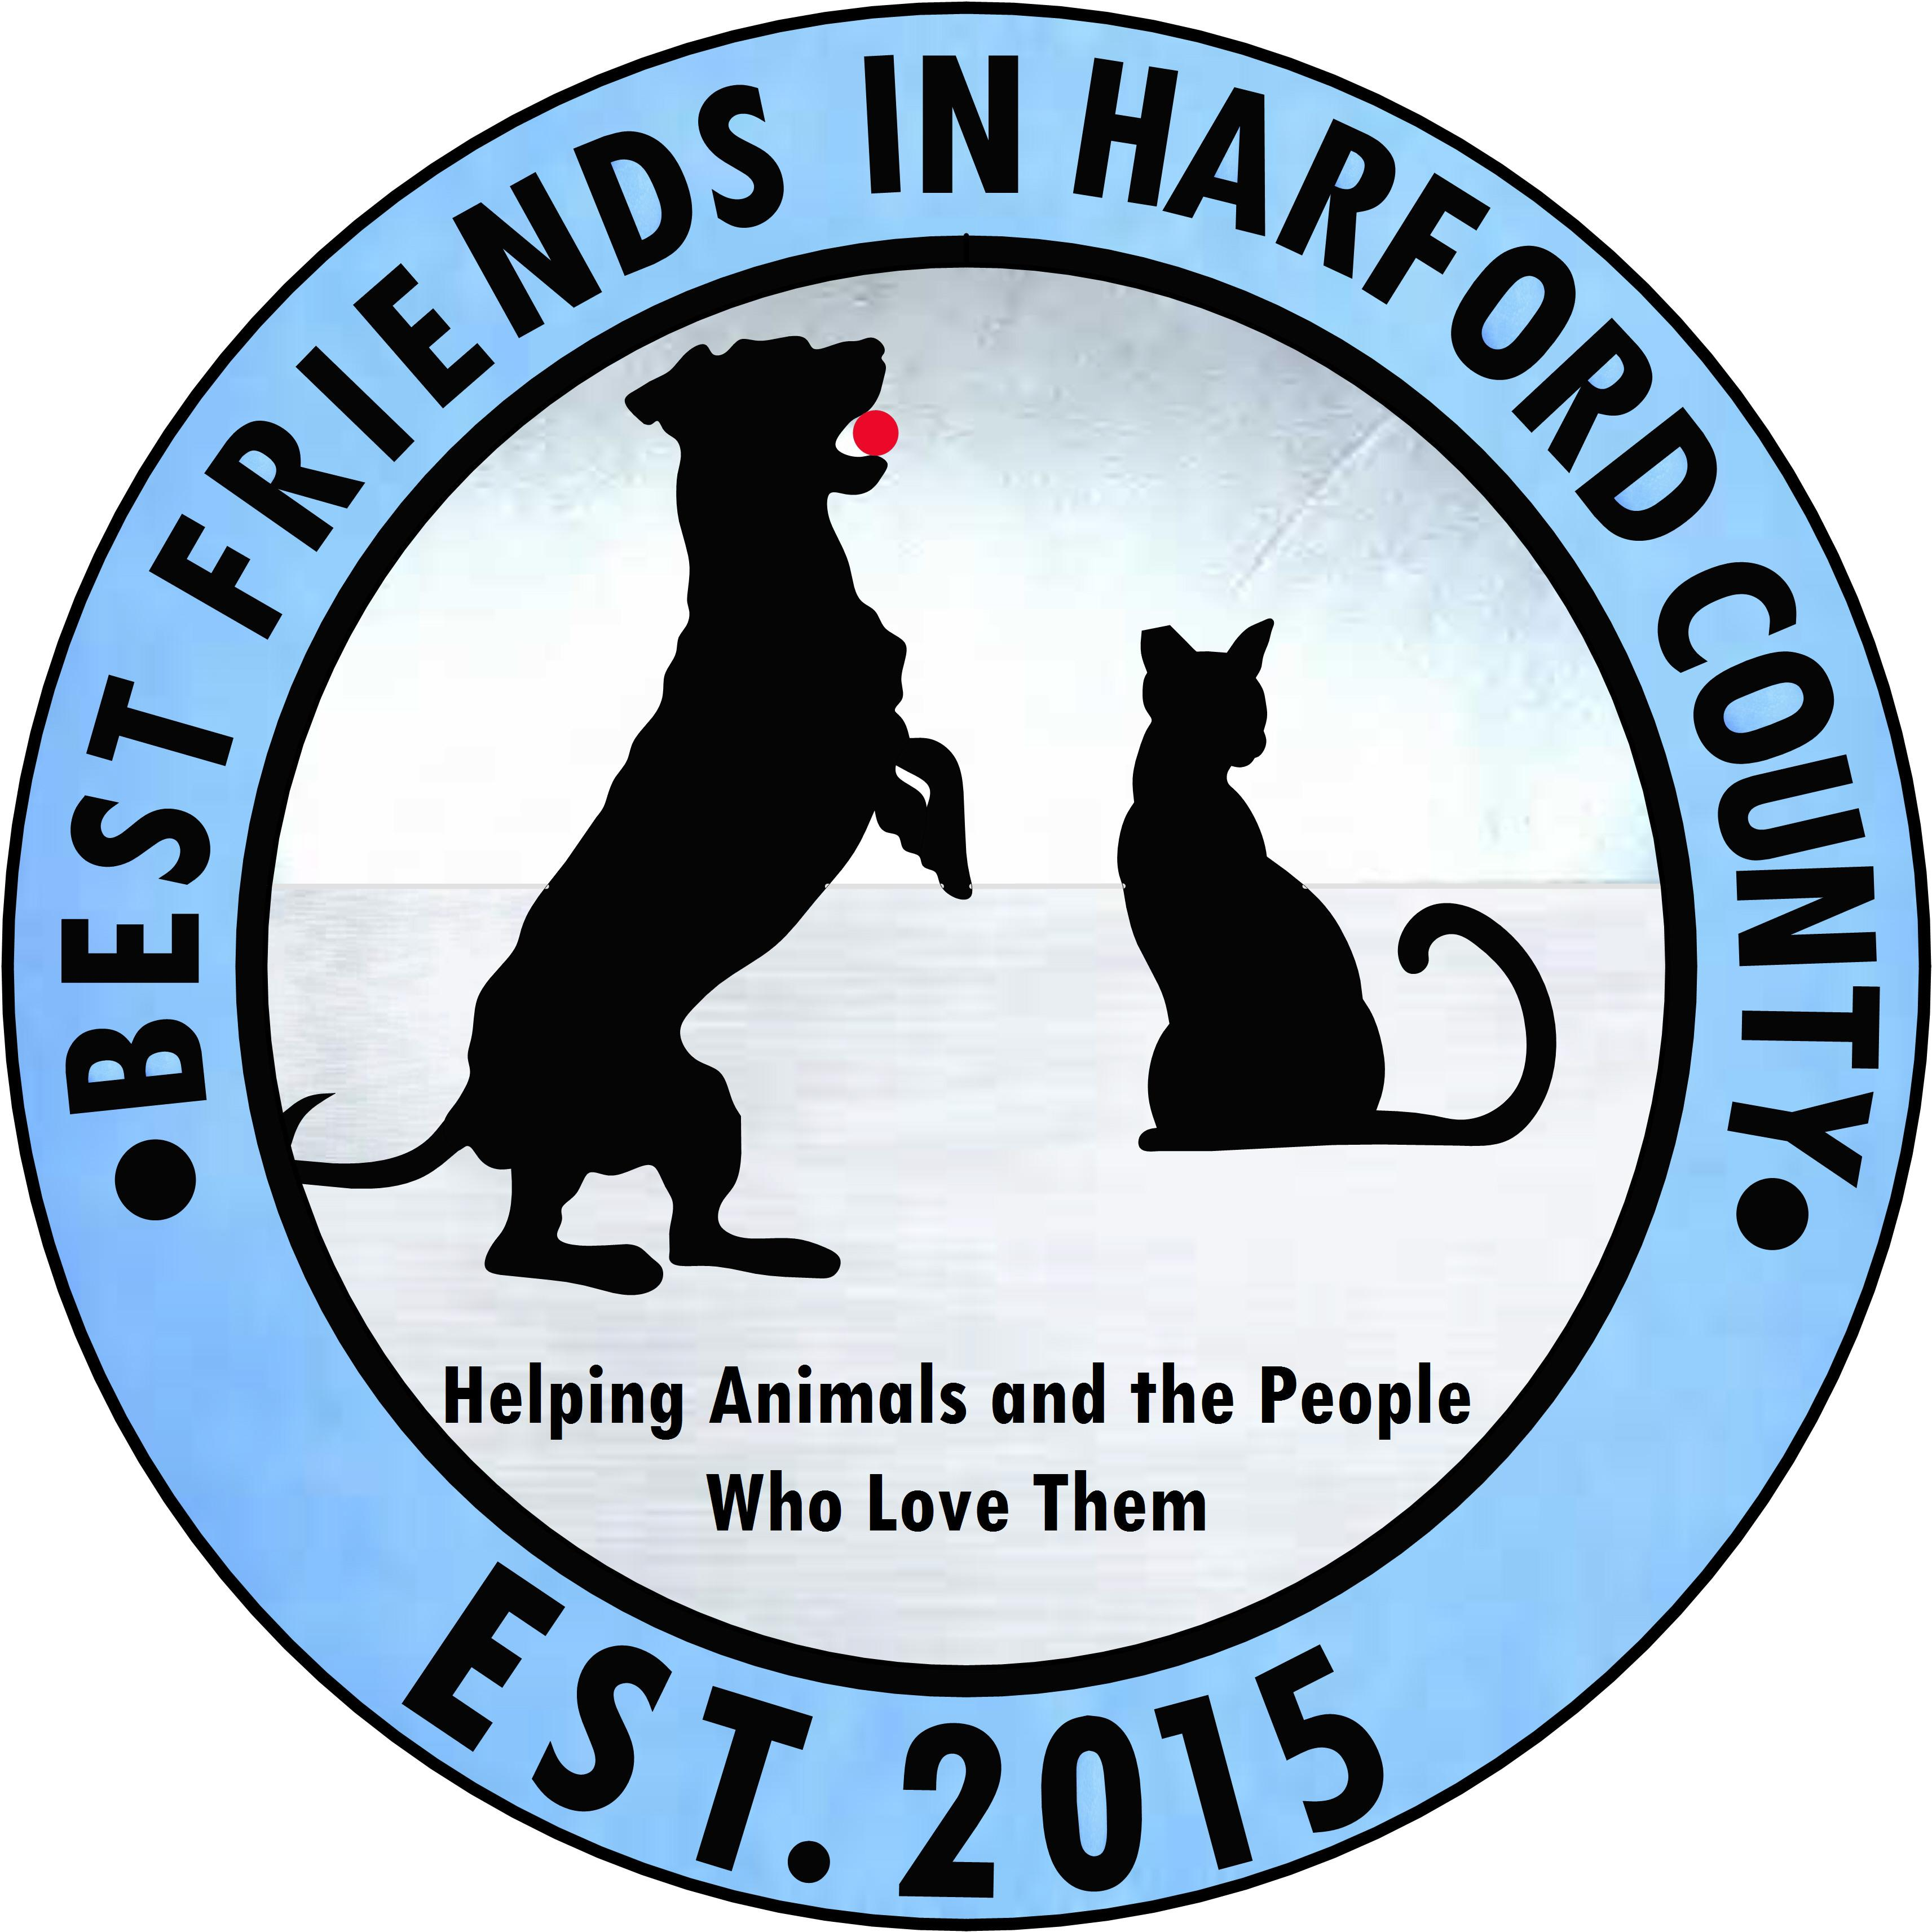 Best Friends in Harford County Inc.